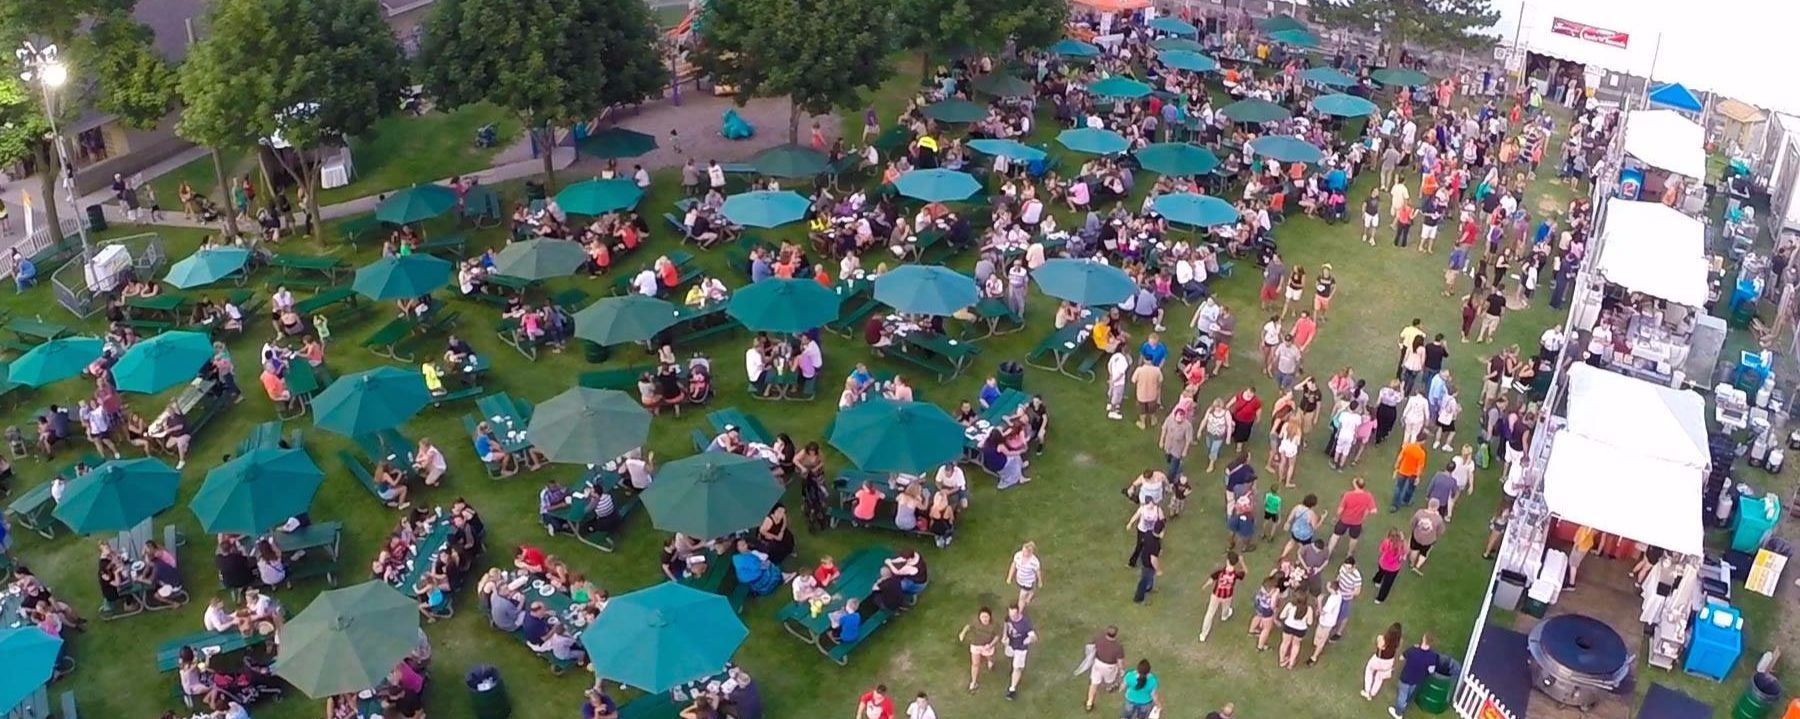 SterlingFest aerial shot